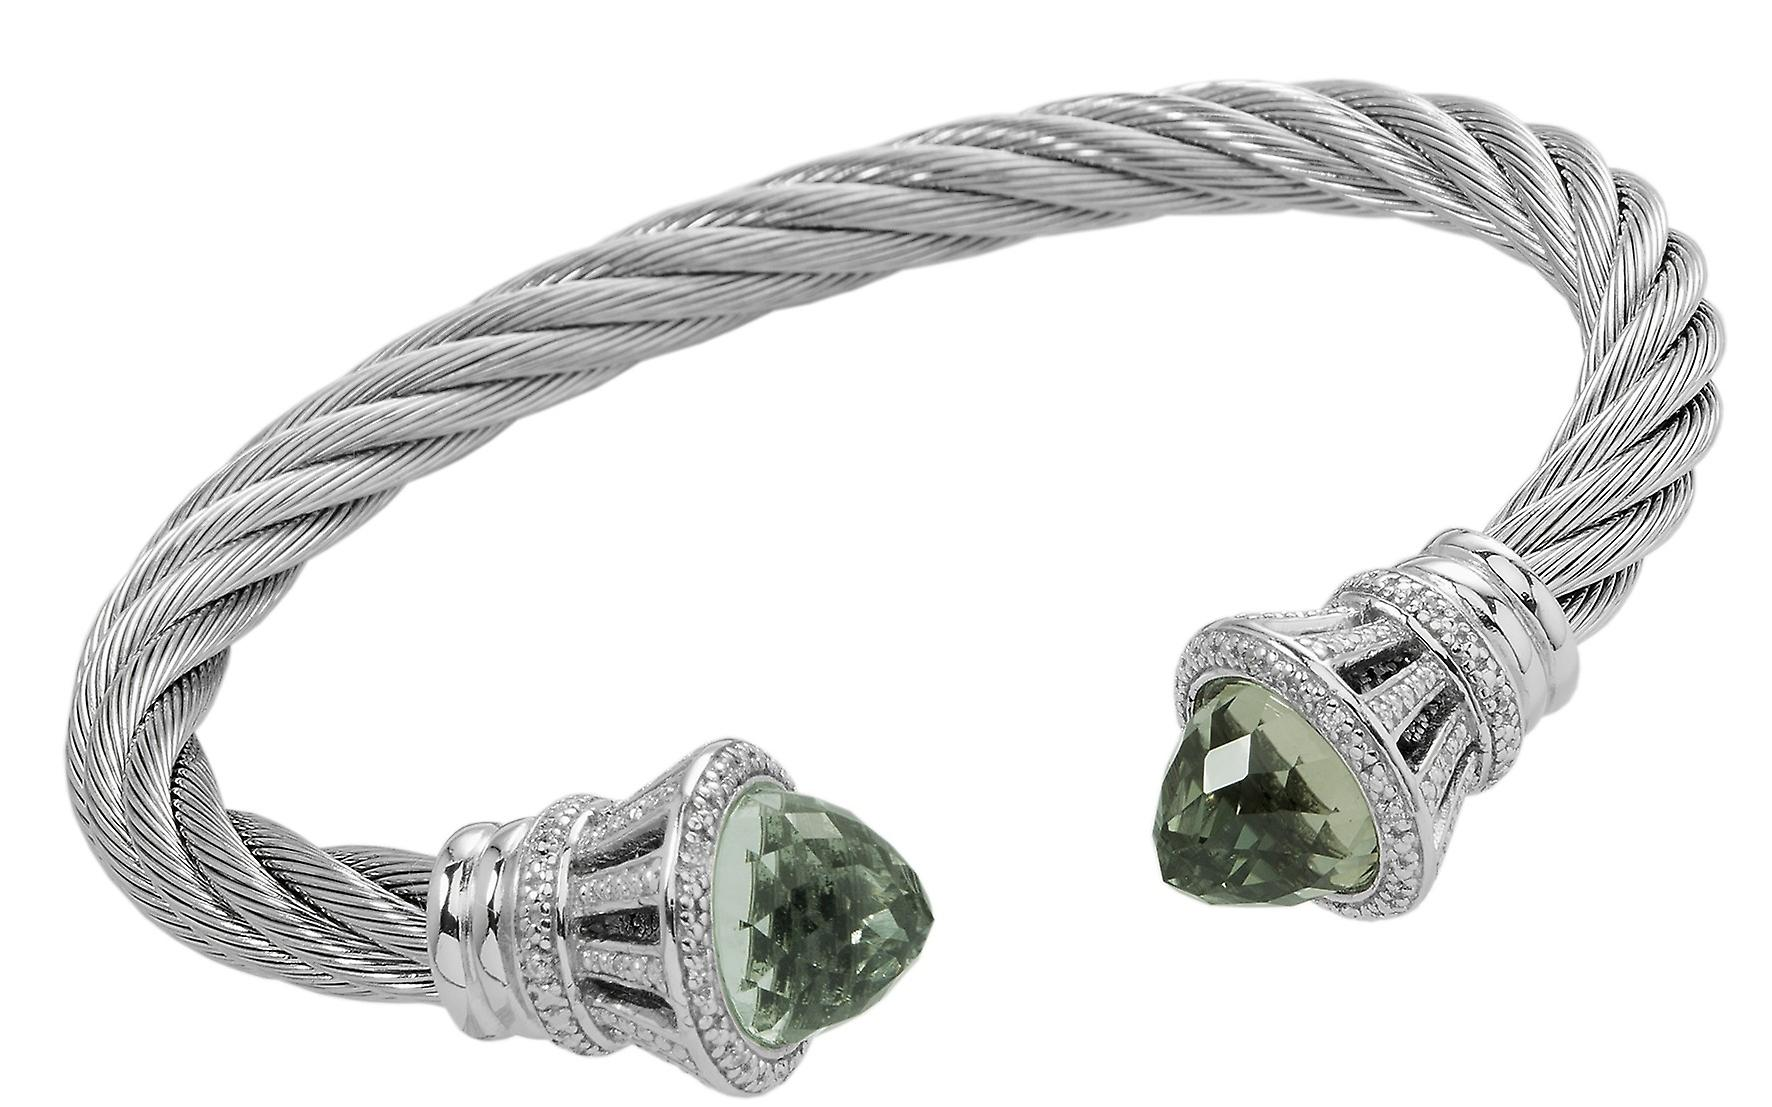 Burgmeister Bangle with Cubic Zirconia JBM3002-521